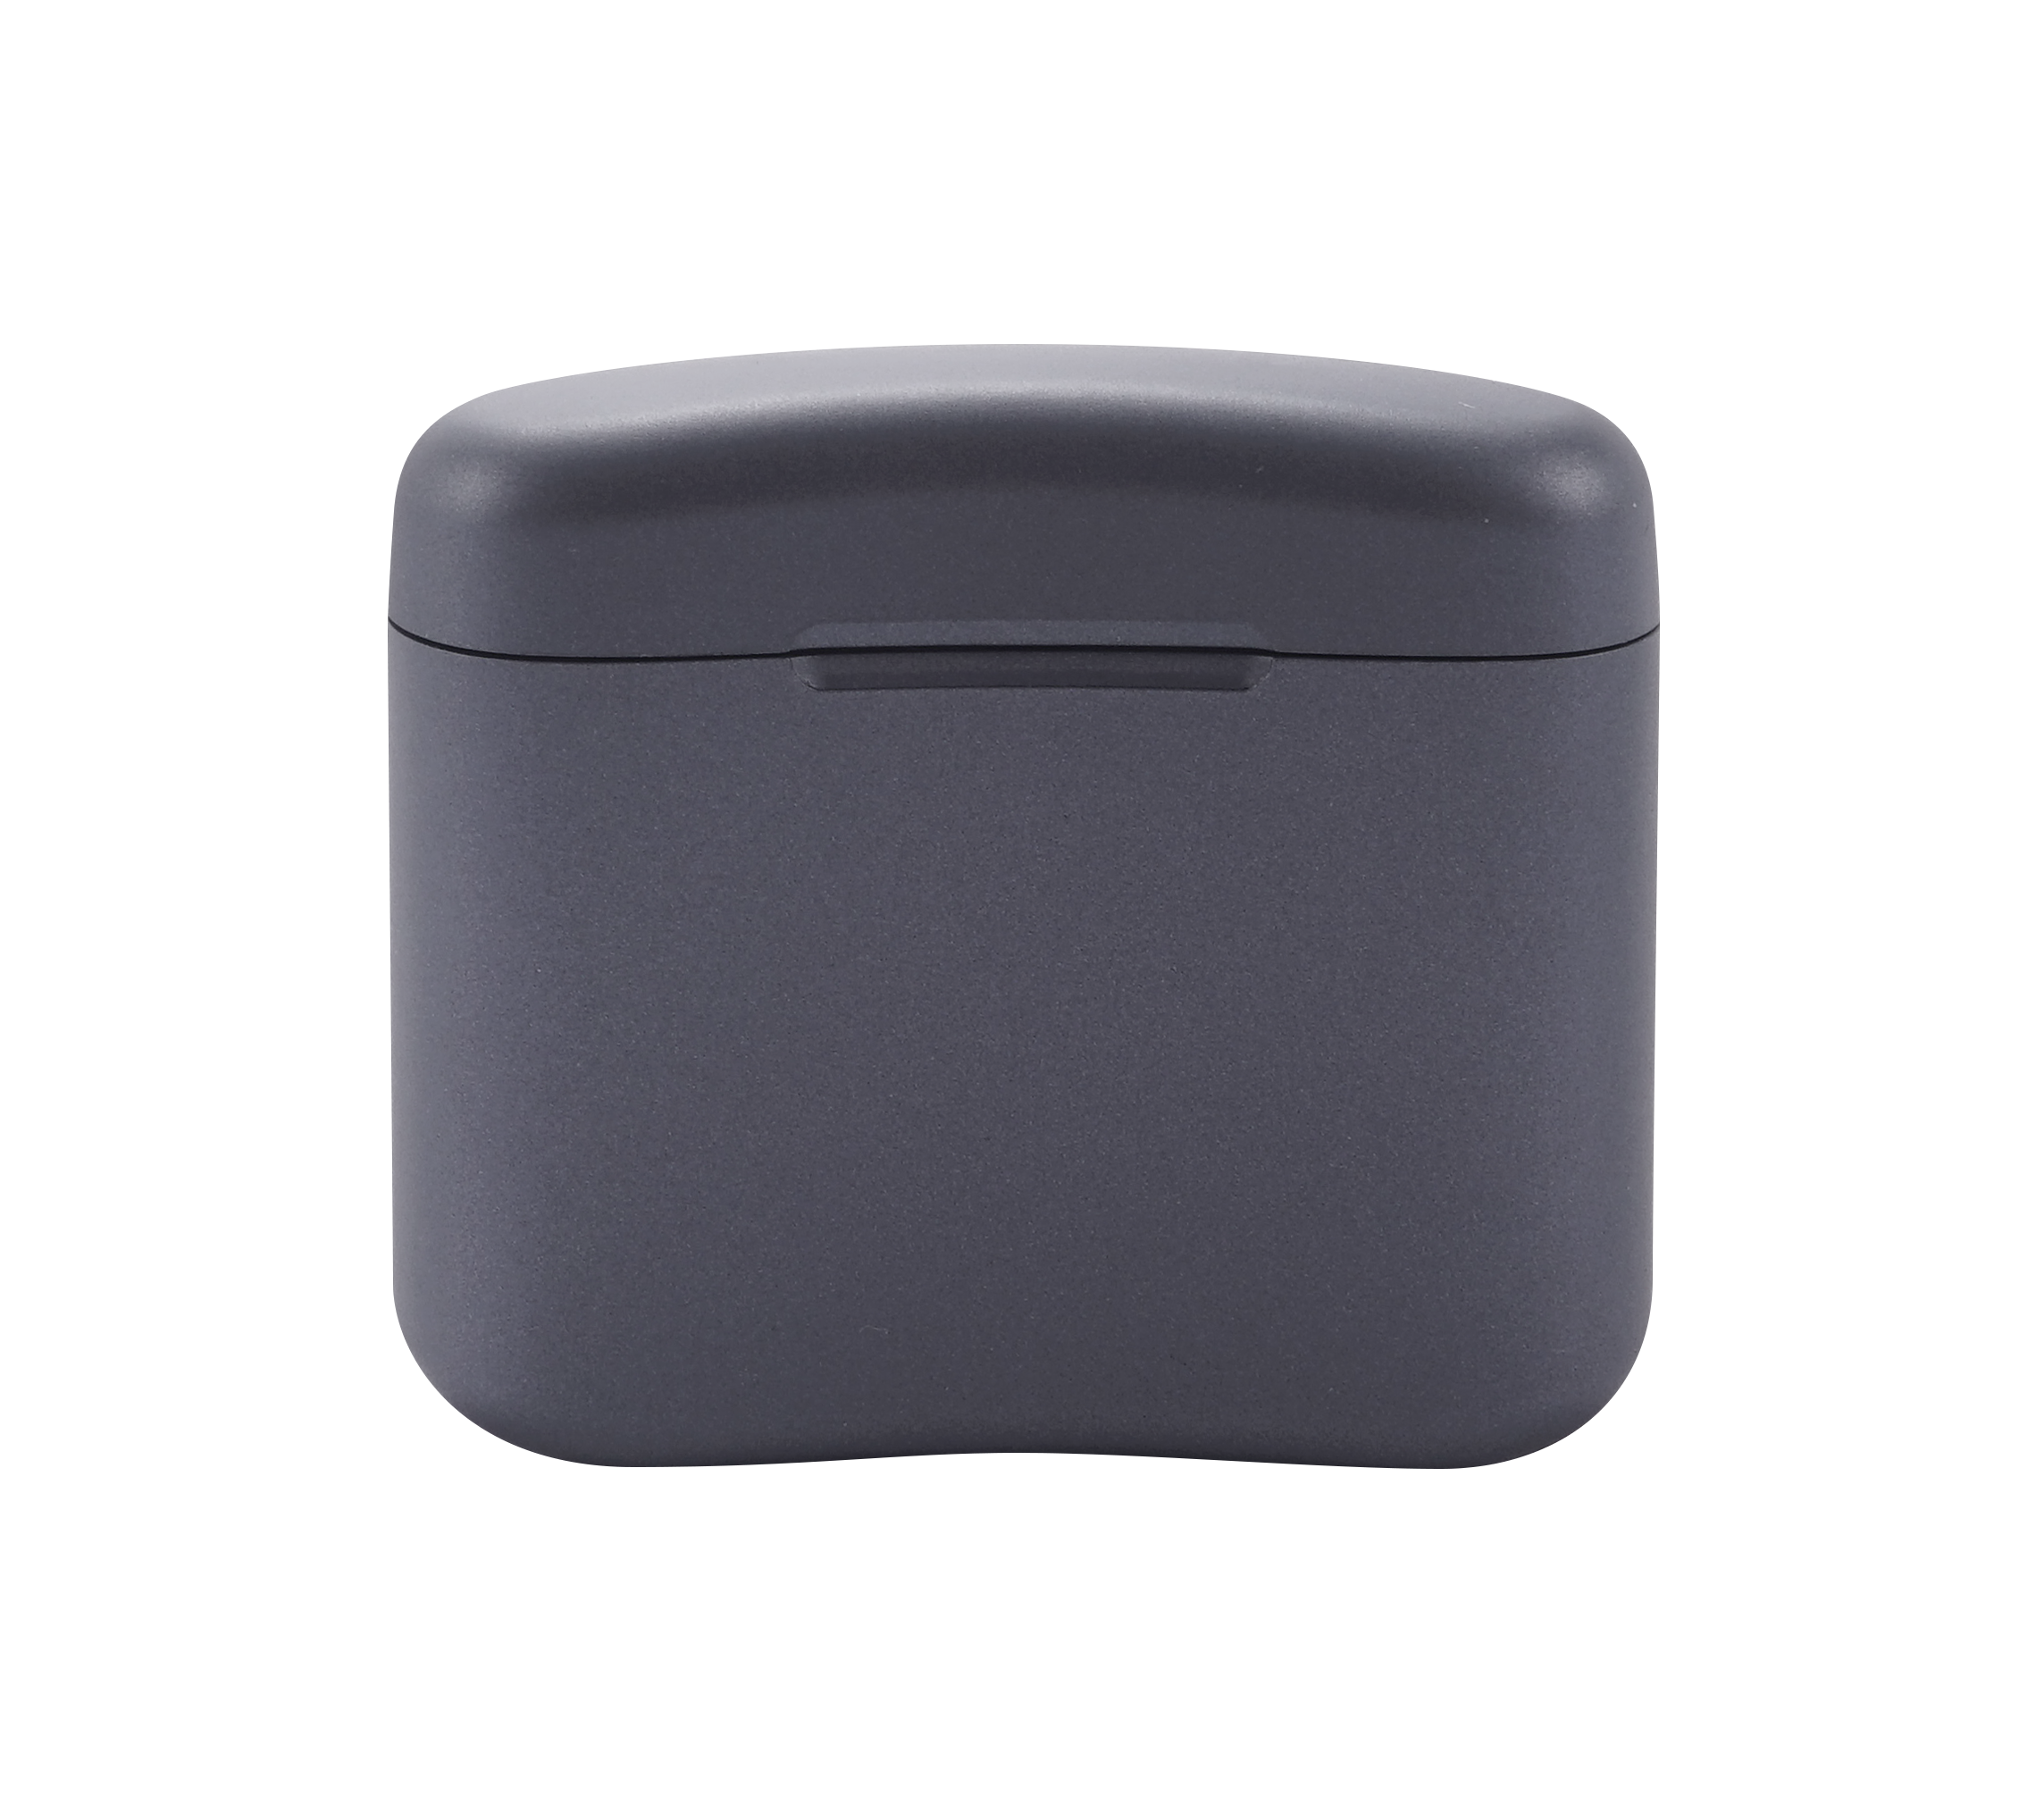 BE8G - Charging Case